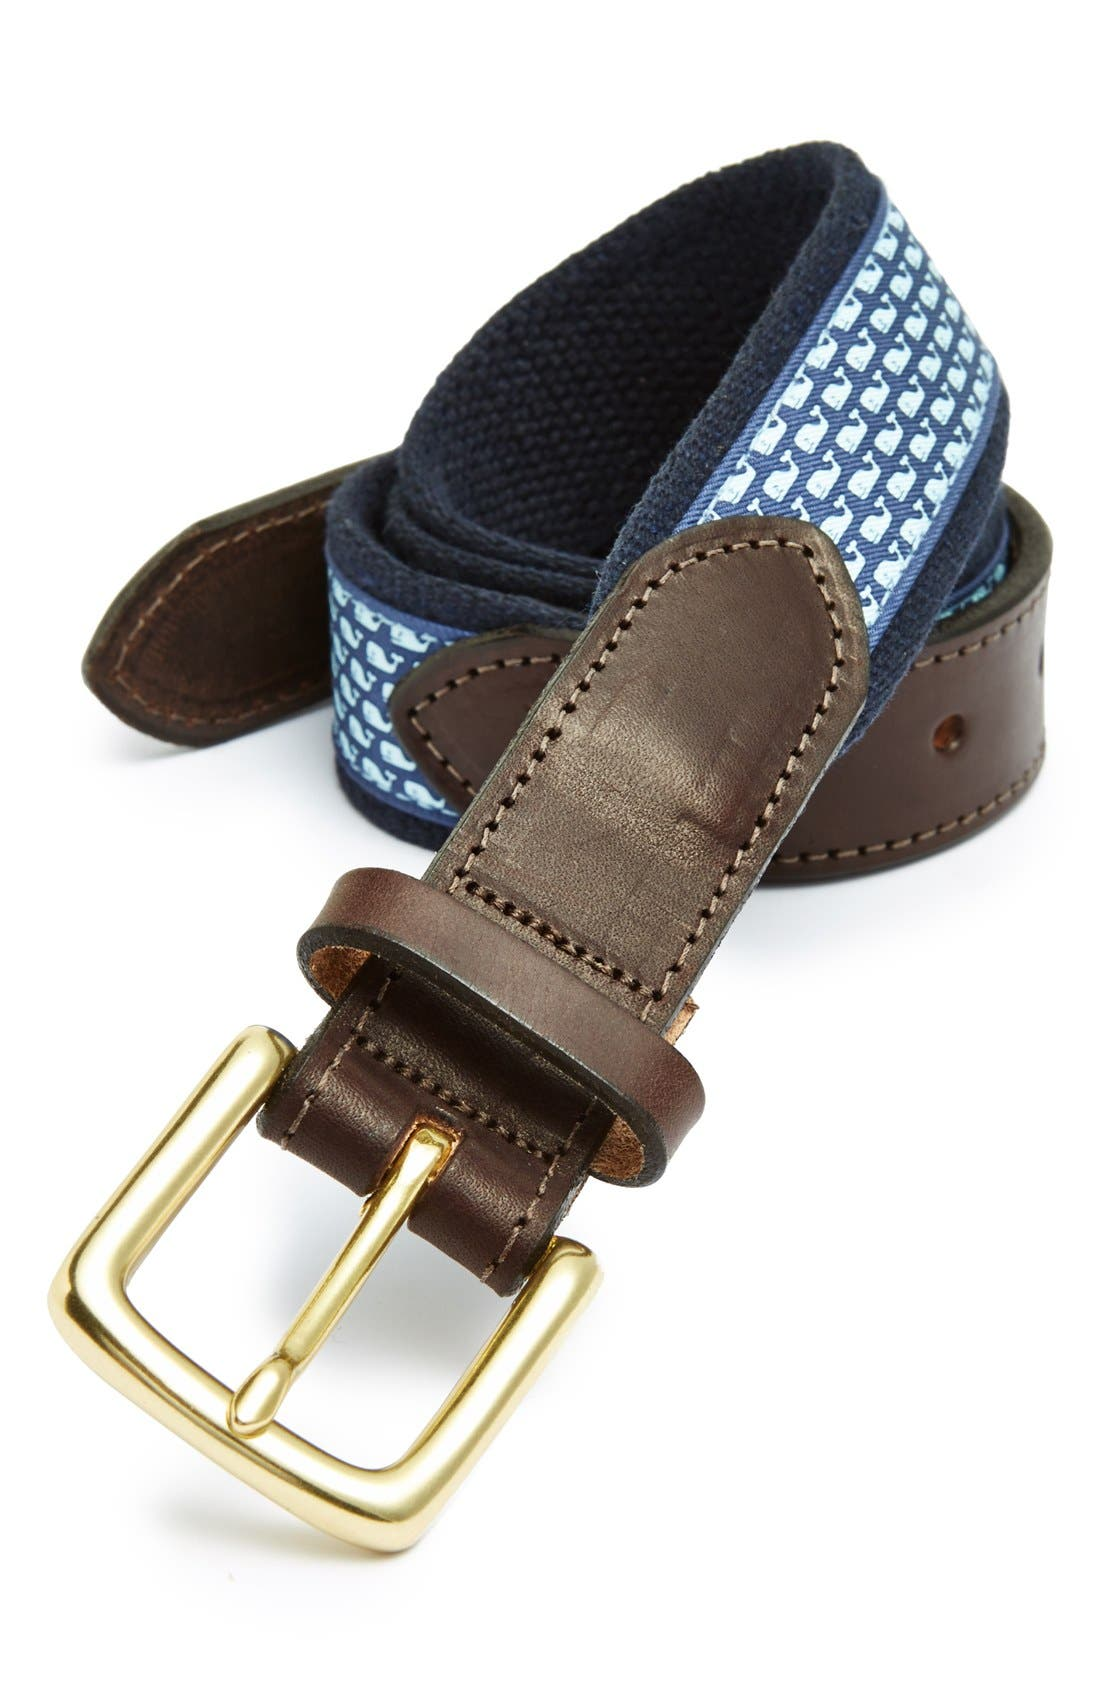 Whale Club Leather & Canvas Belt,                             Main thumbnail 1, color,                             Navy